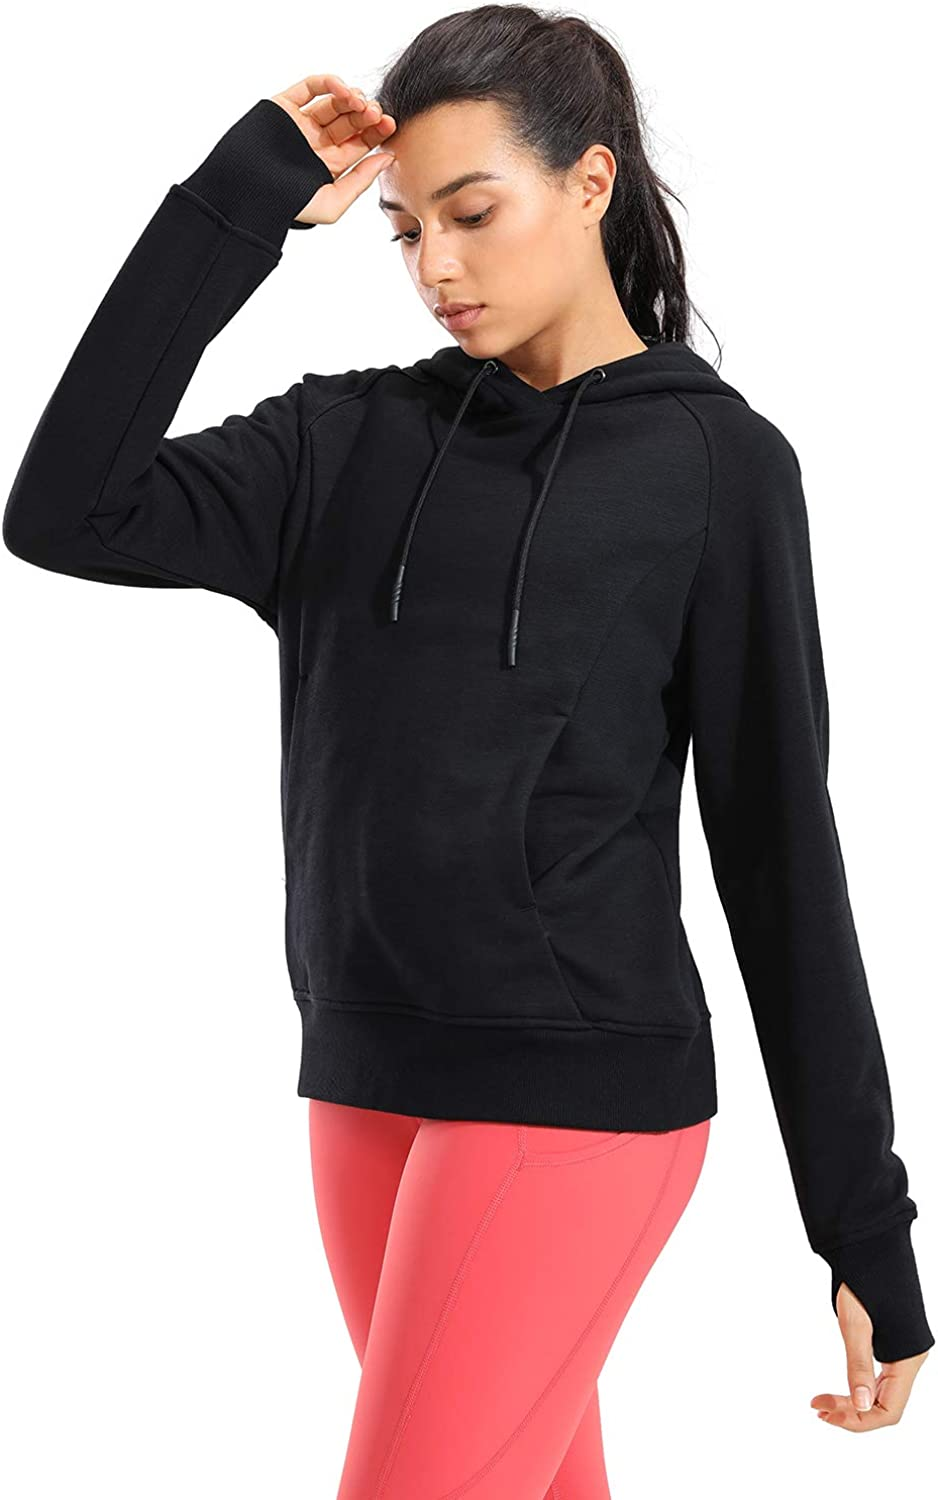 CRZ YOGA Women's Cotton Hoodies Pullover Hooded Sweatshirt Long Sleeve Workout Top with Thumb Holes